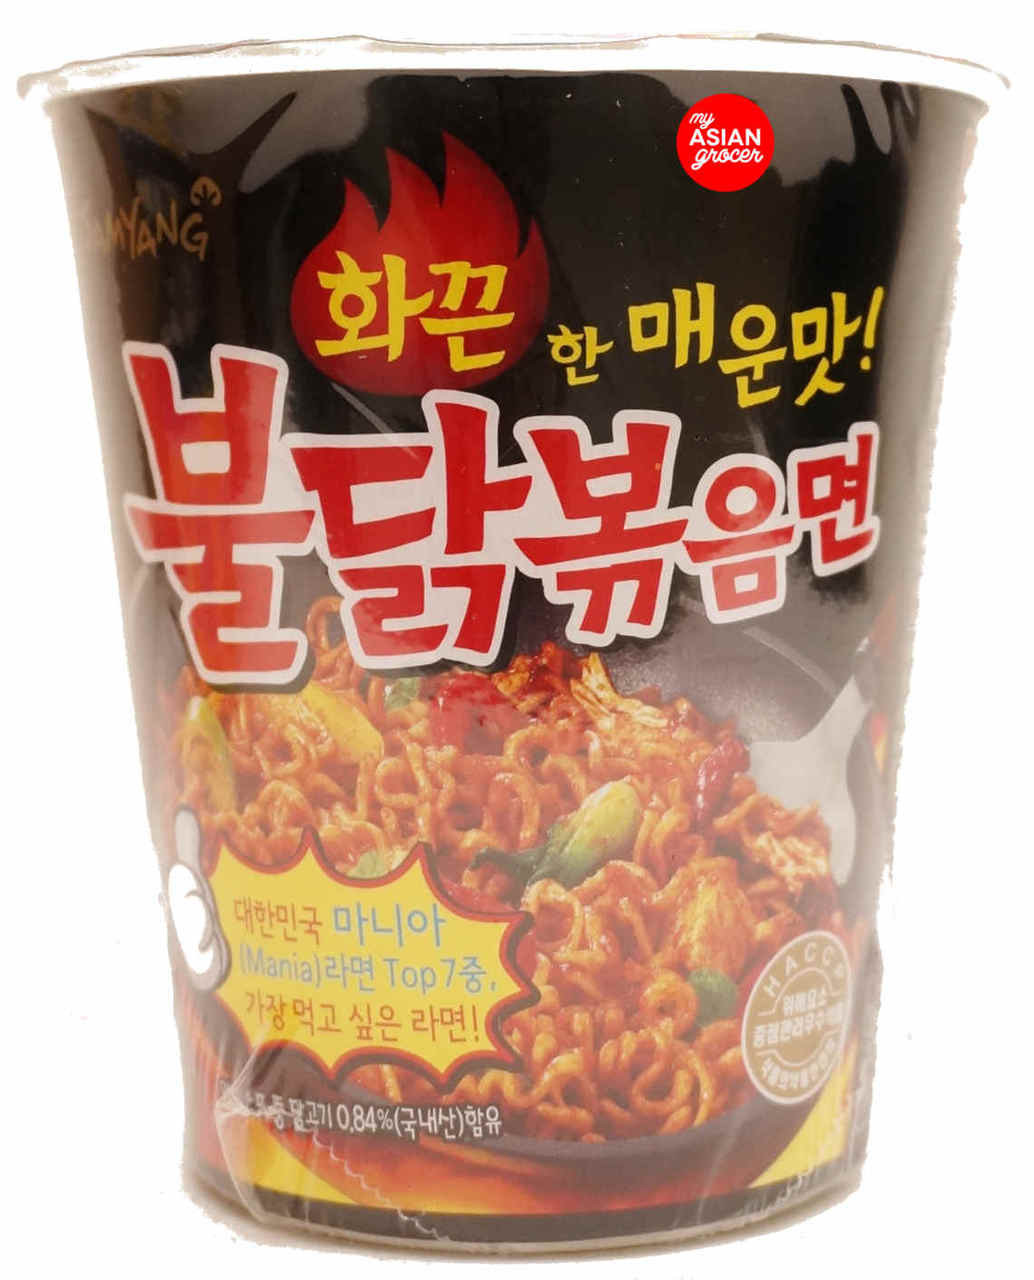 Samyang Spicy Chicken Ramen Cup 70g My Asian Grocer Nuclear 2x